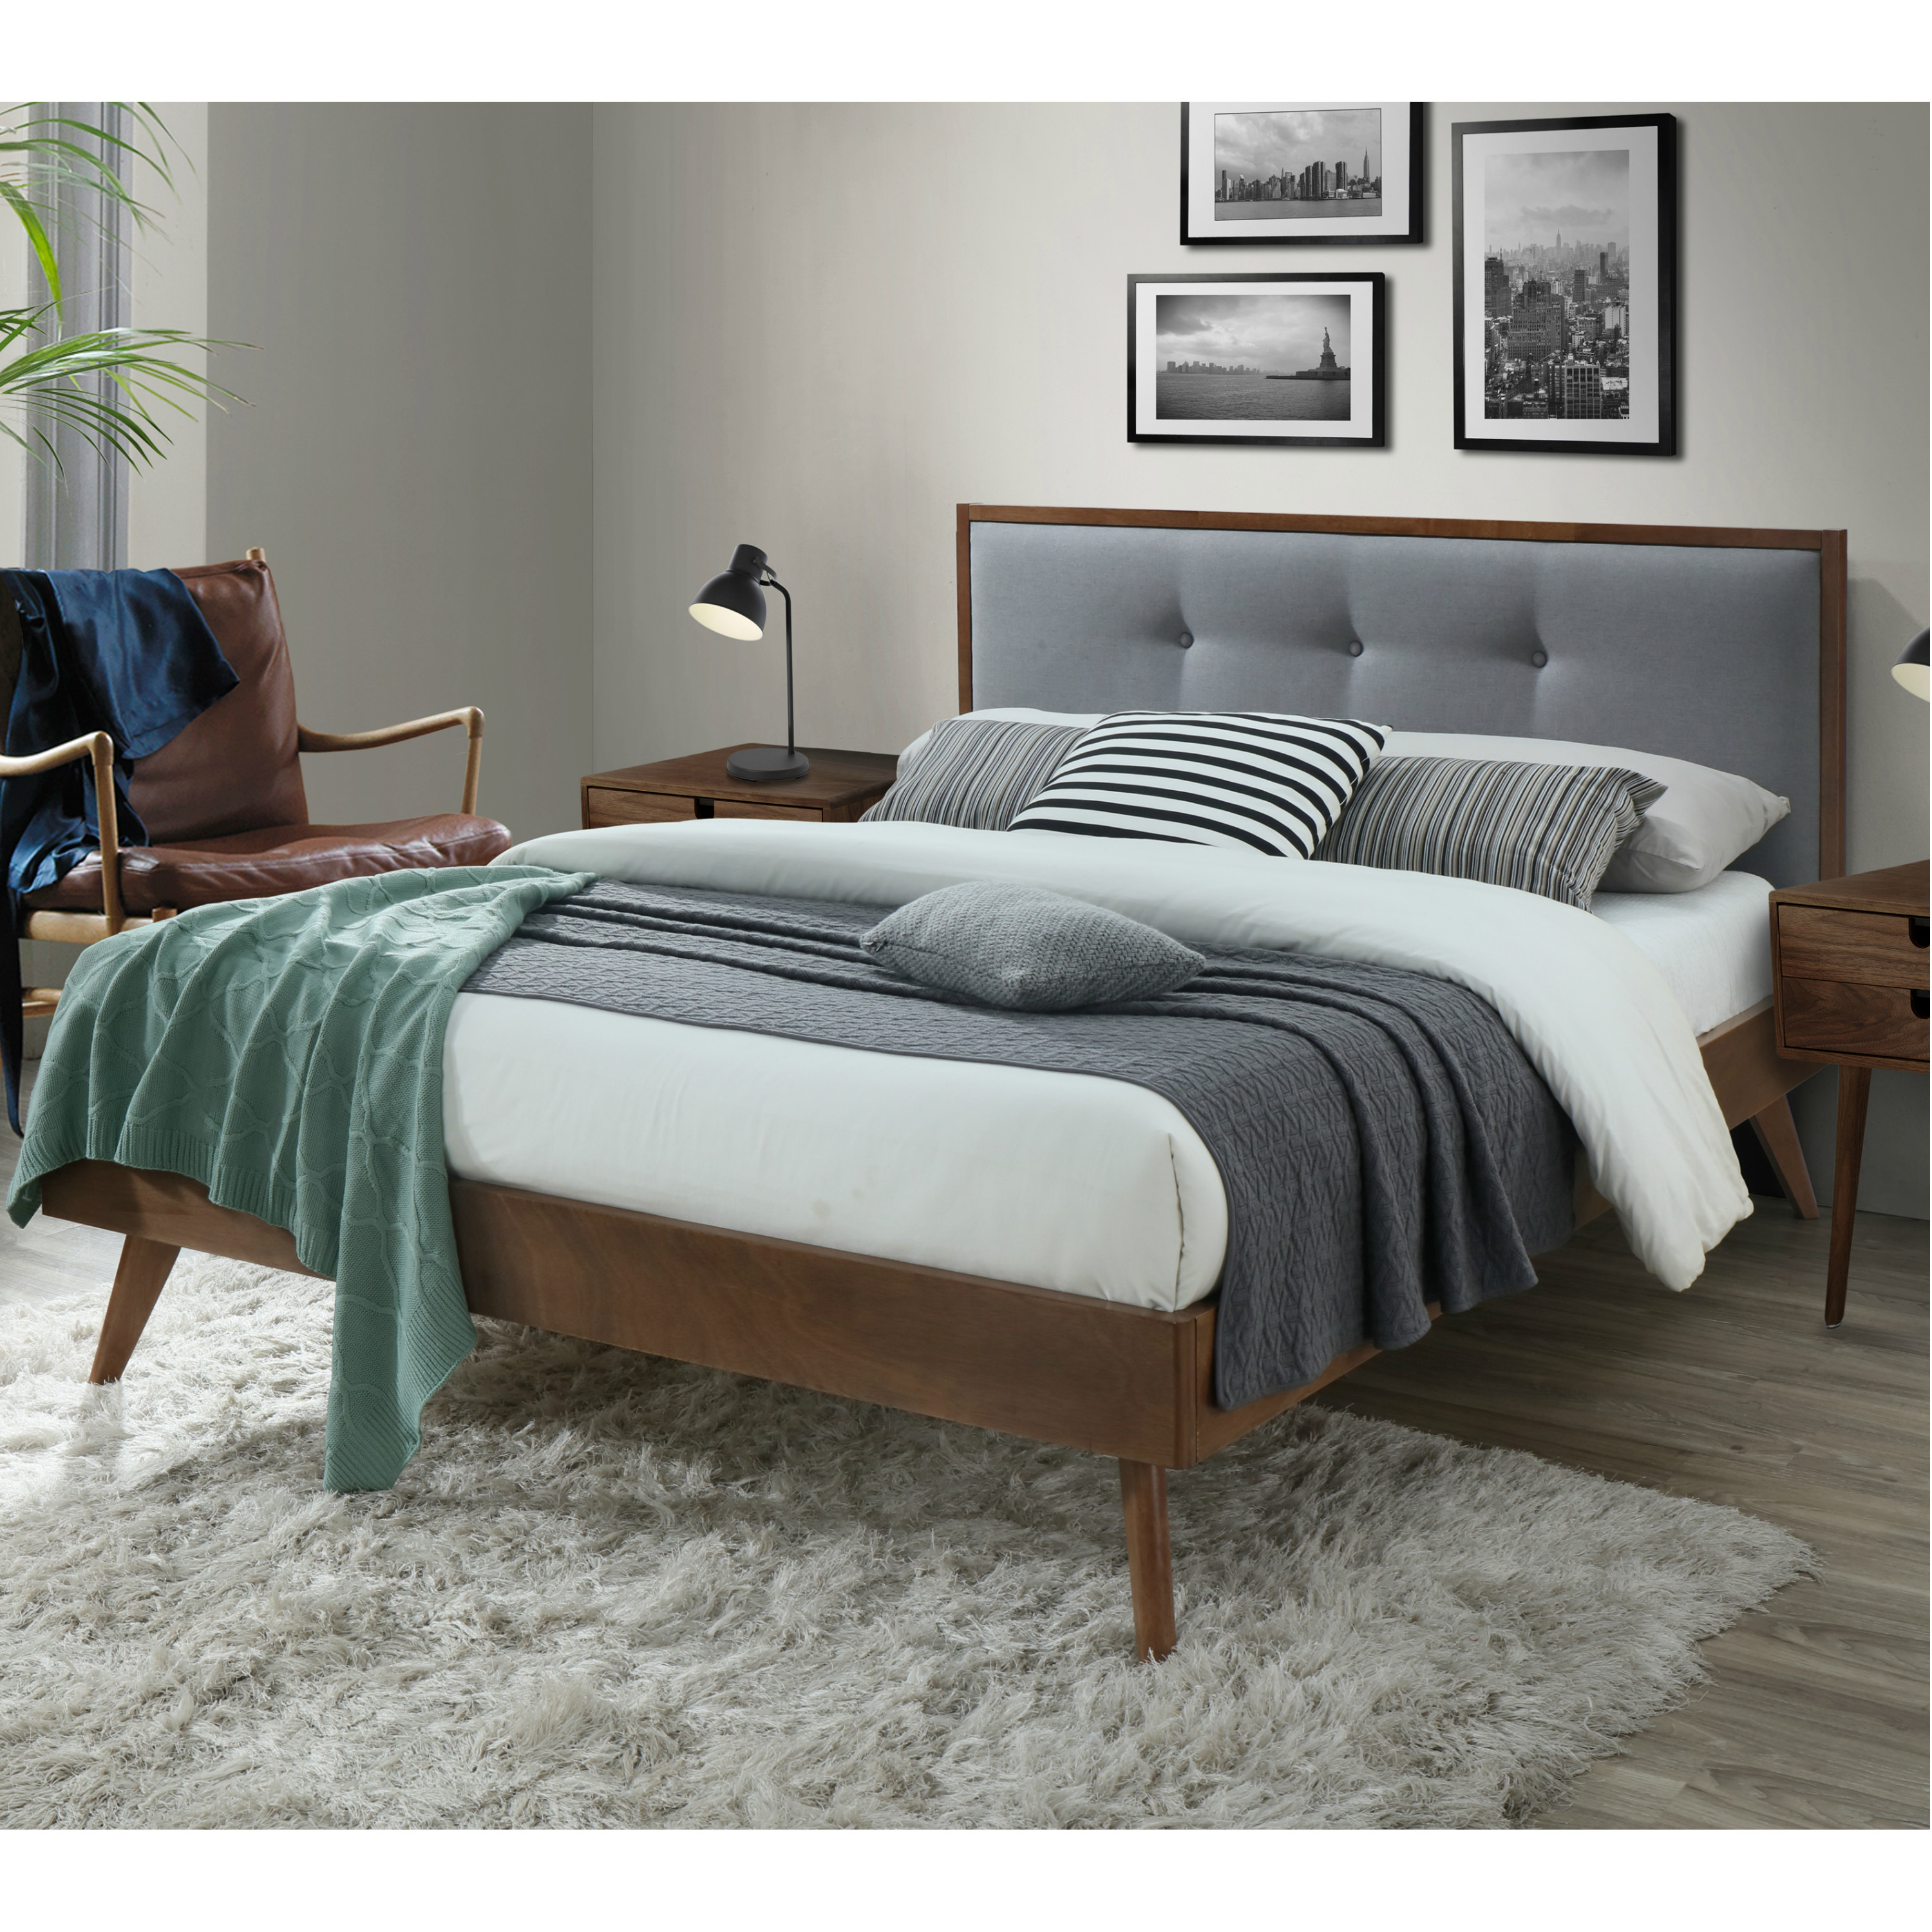 dg casa montana mid century modern platfrom bed frame with tufted upholstered headboard queen size in grey fabric walmart com